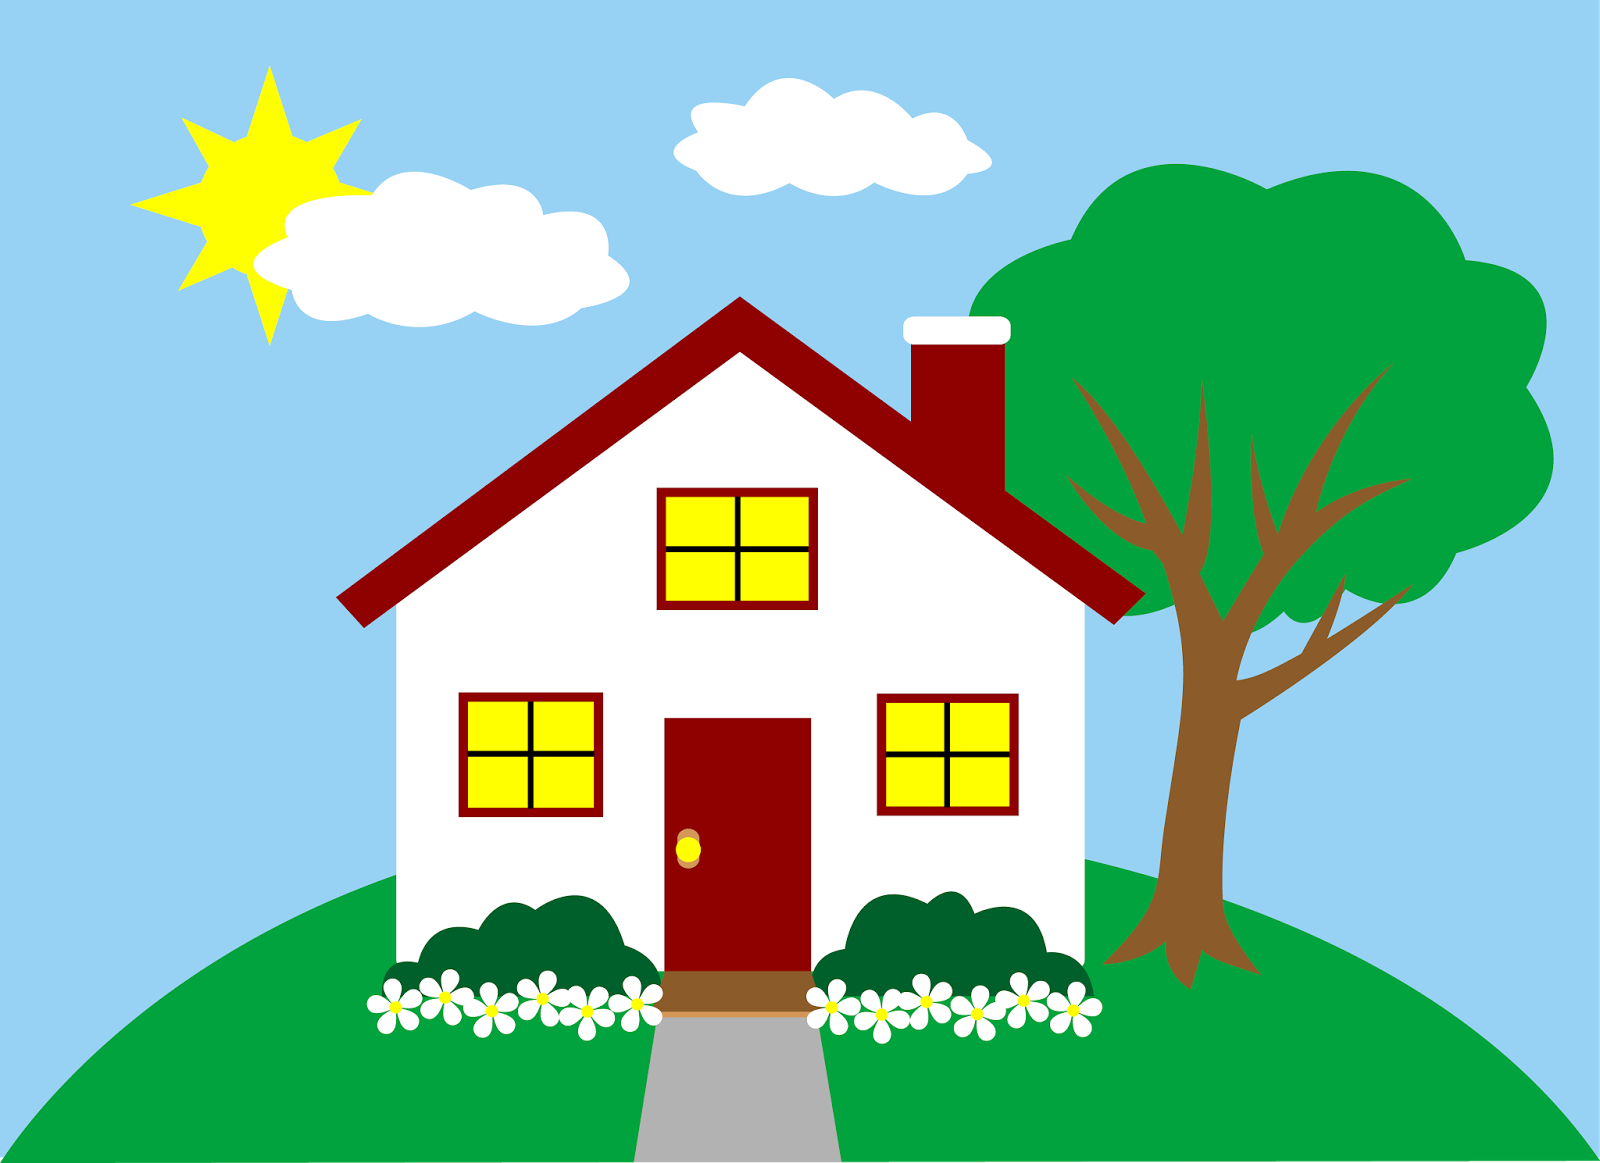 Home clipart.